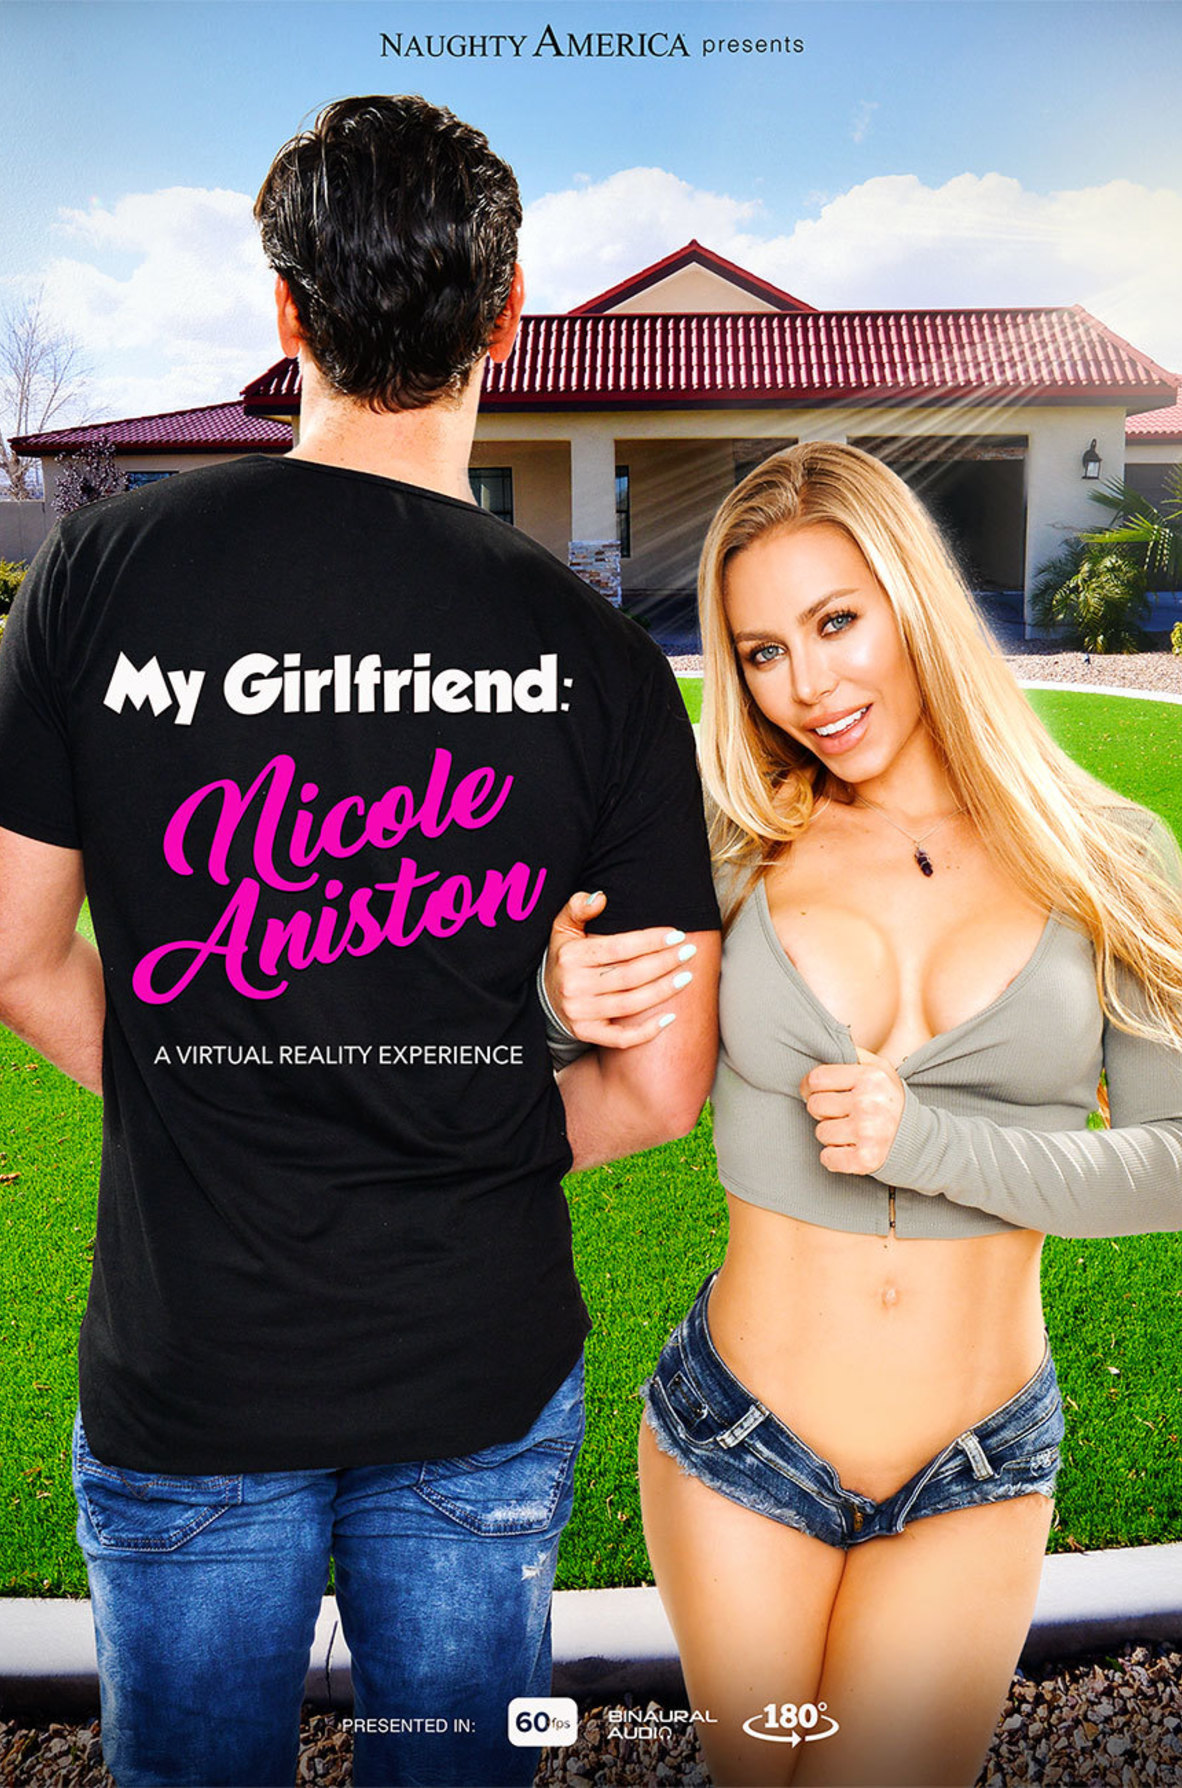 Watch Nicole Aniston and Ryan Driller video in Naughty America